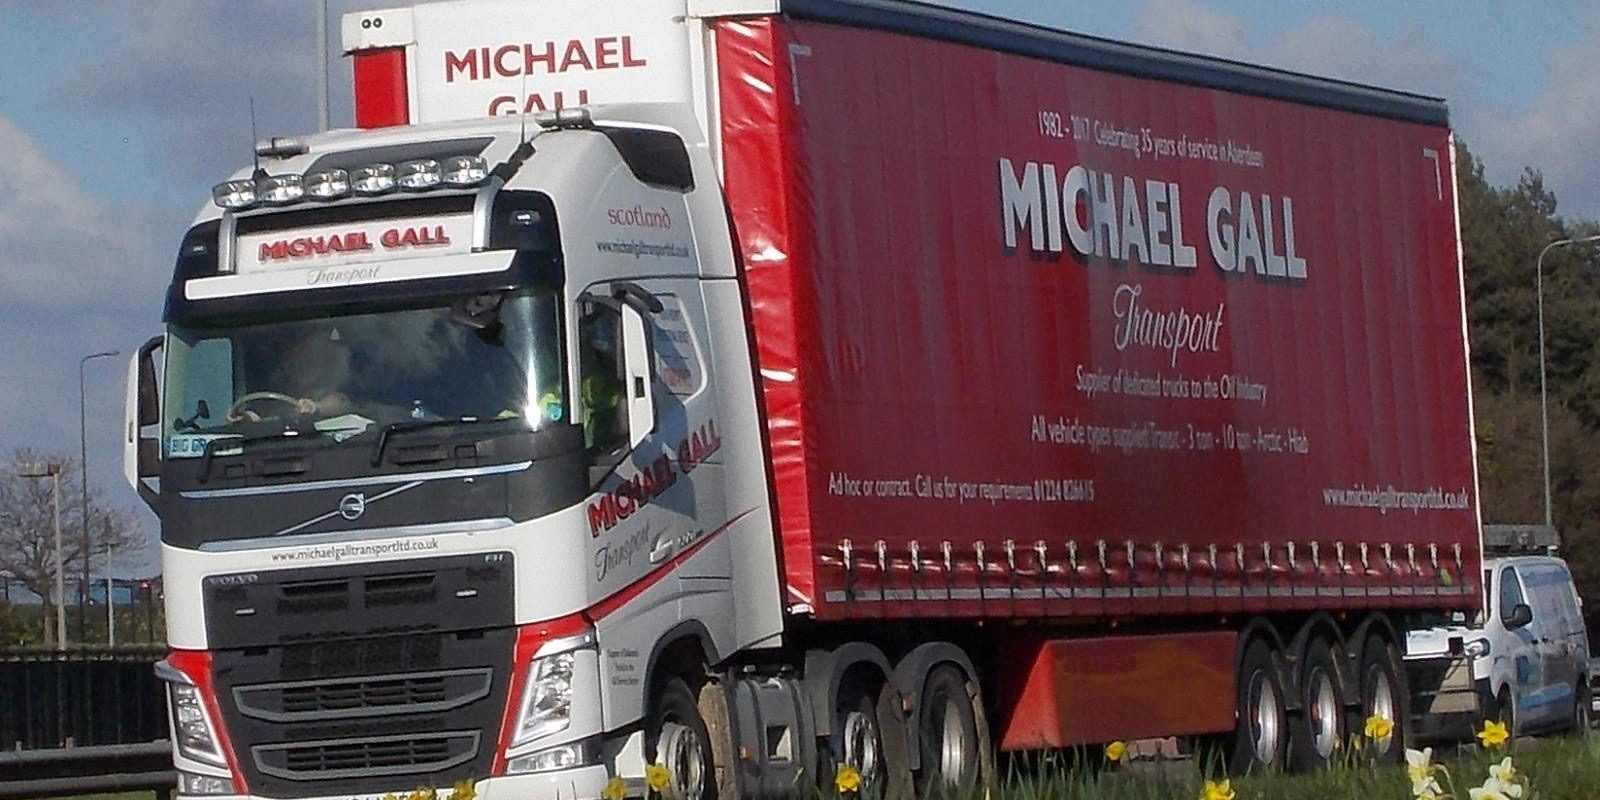 Michael Gall transport lorry